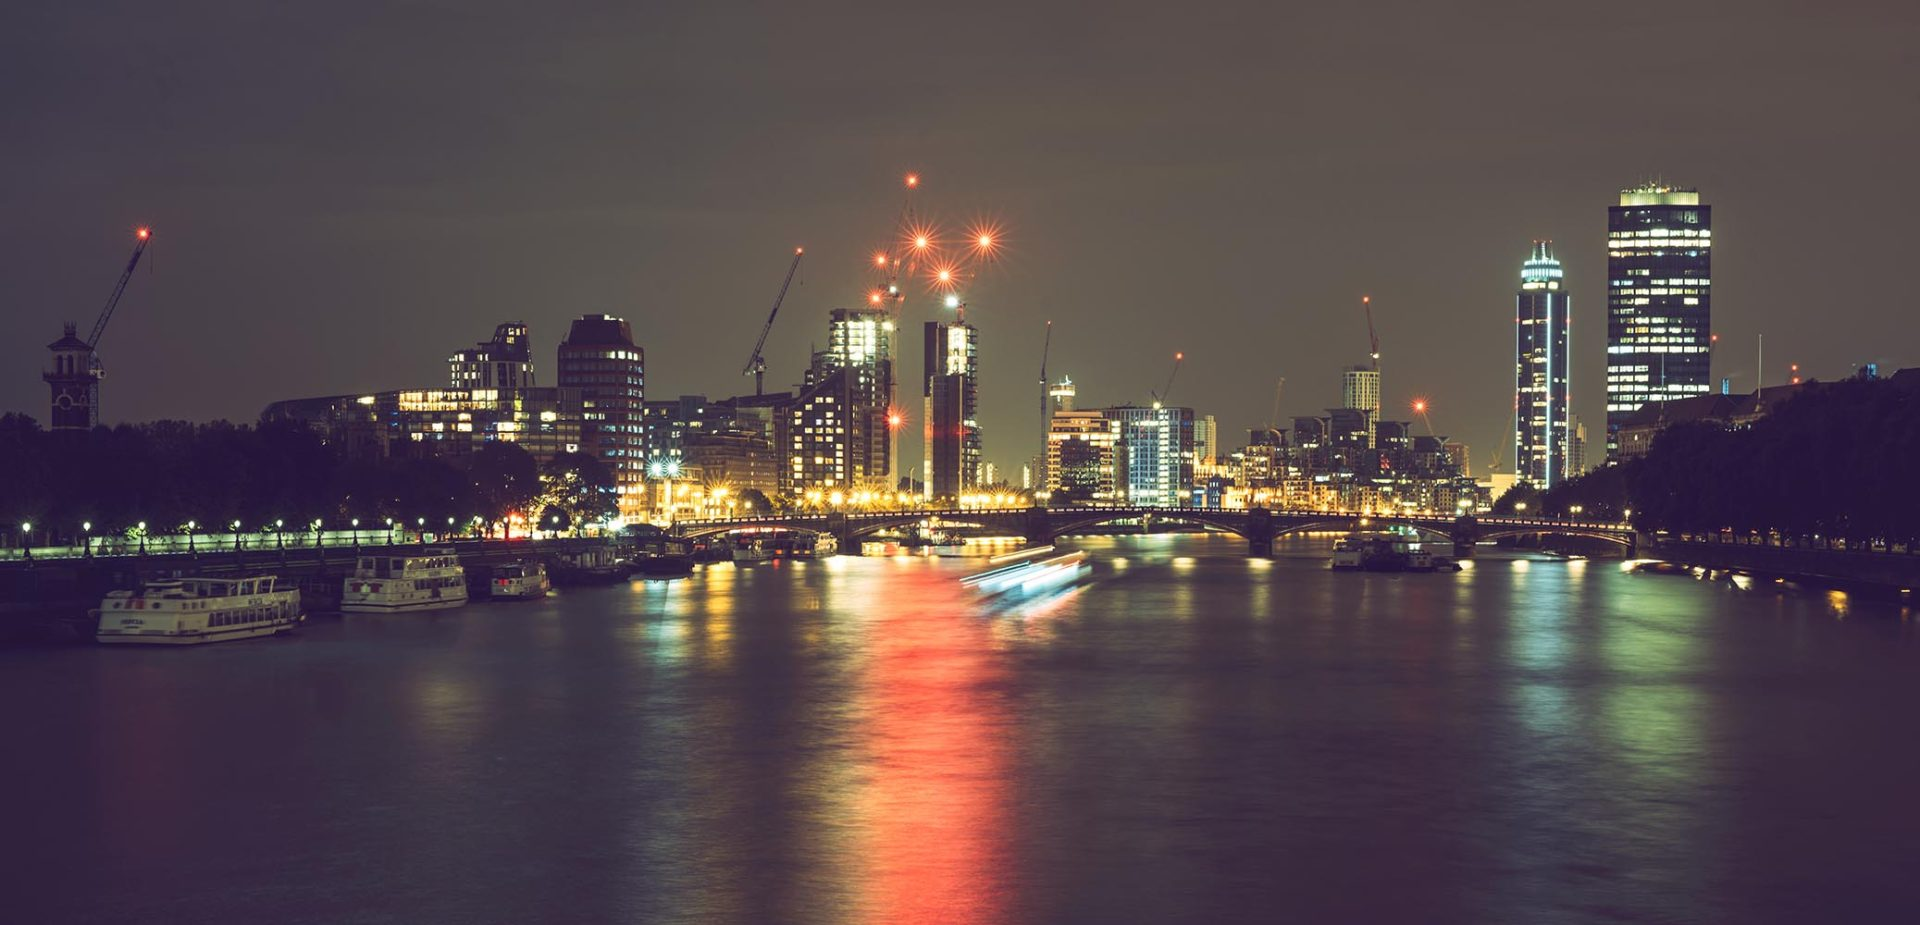 The skyline of London